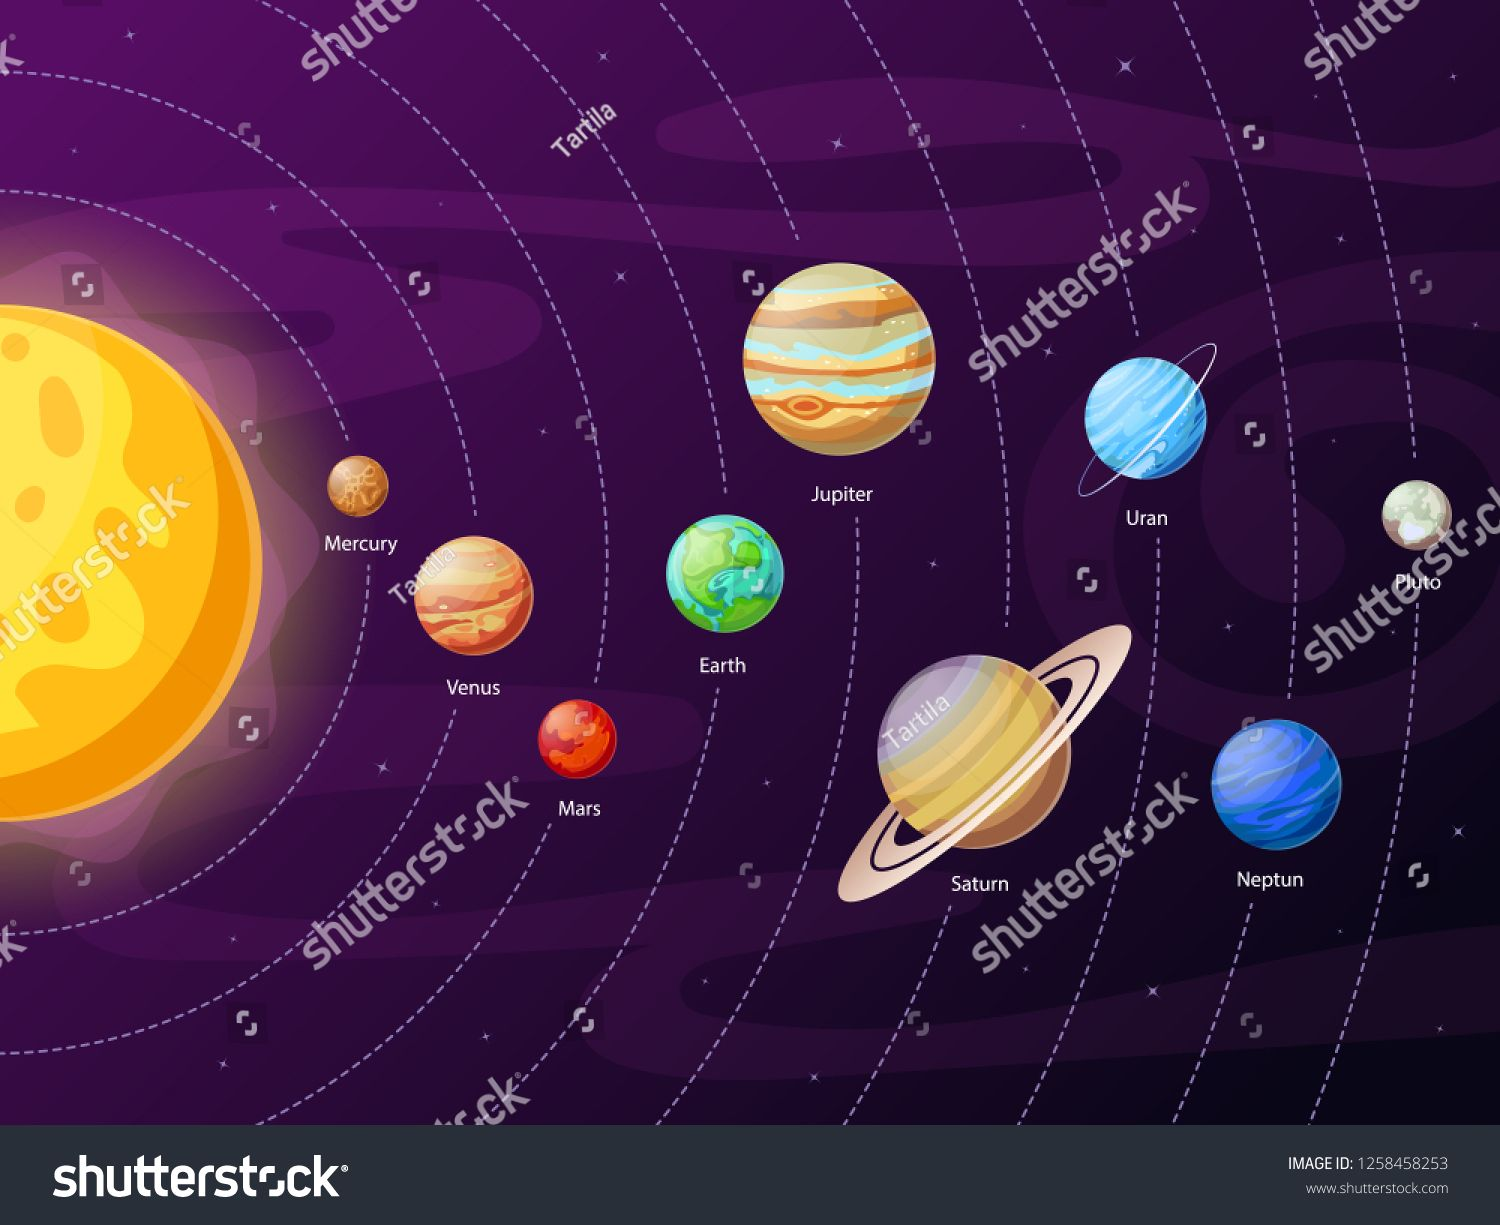 Wallpaper Border Outer Space Solar System Space Shuttle Earth /& Planets Galaxy